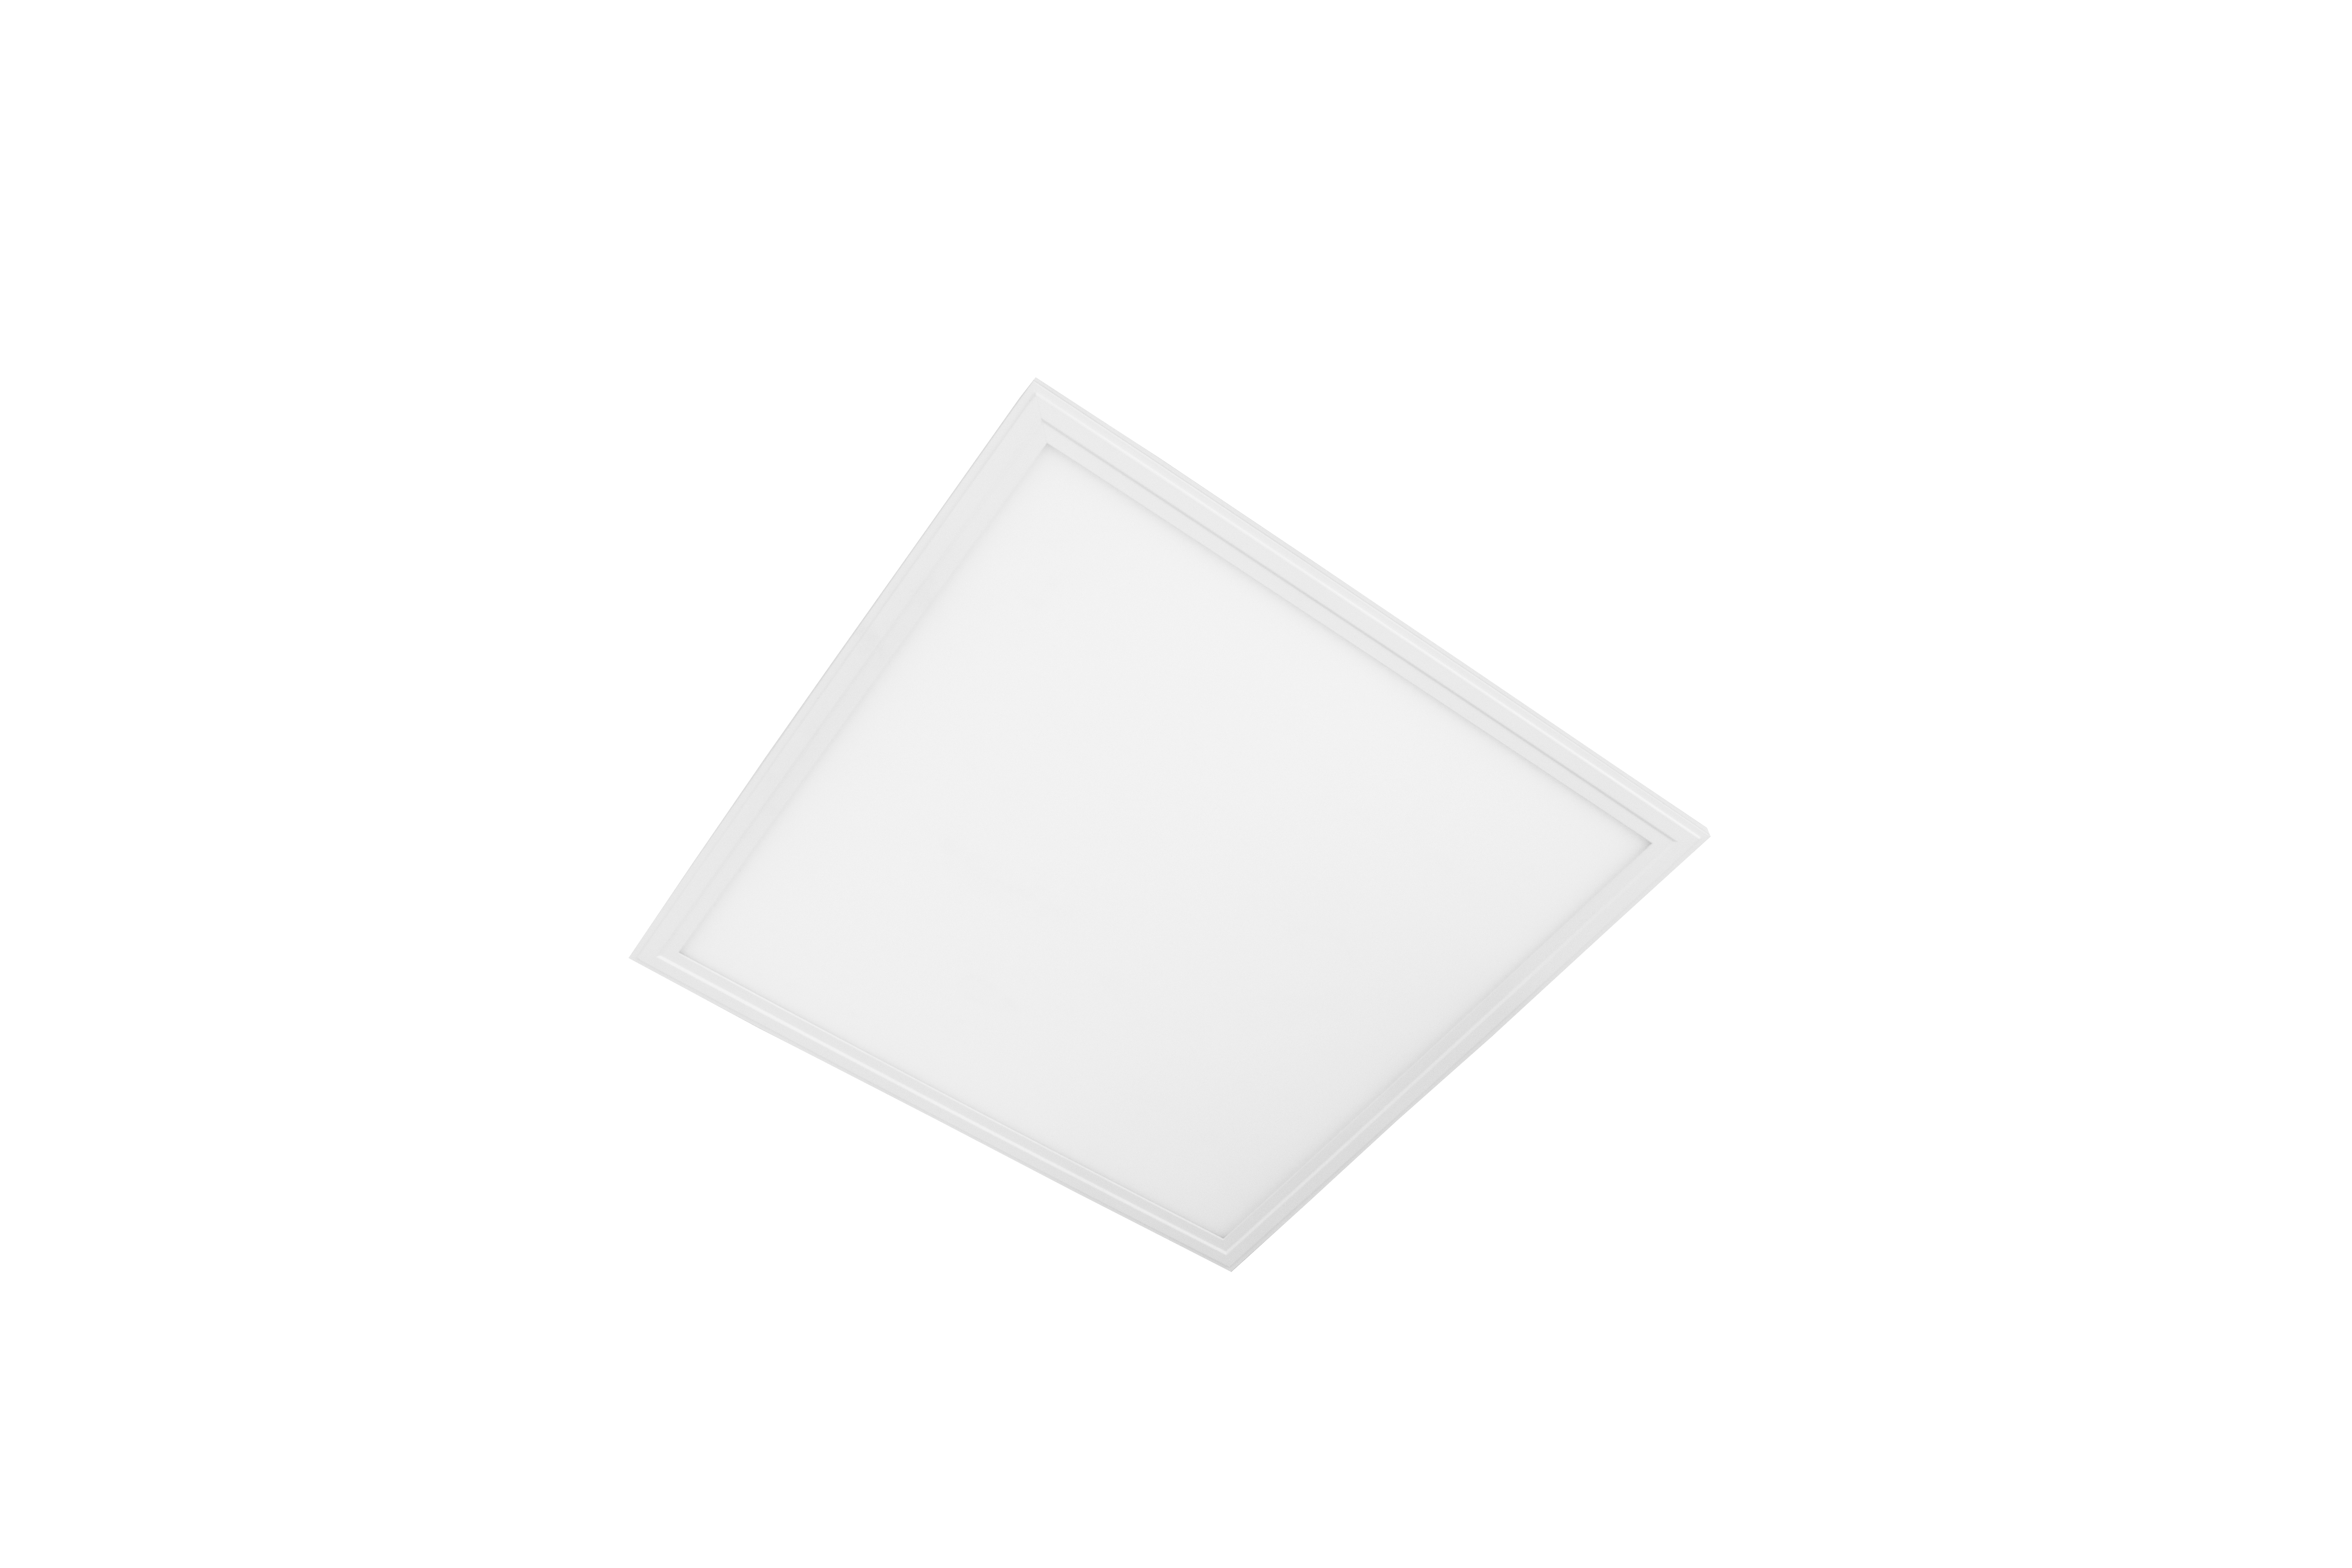 eSkylight LED Panel Lamp - 17050005